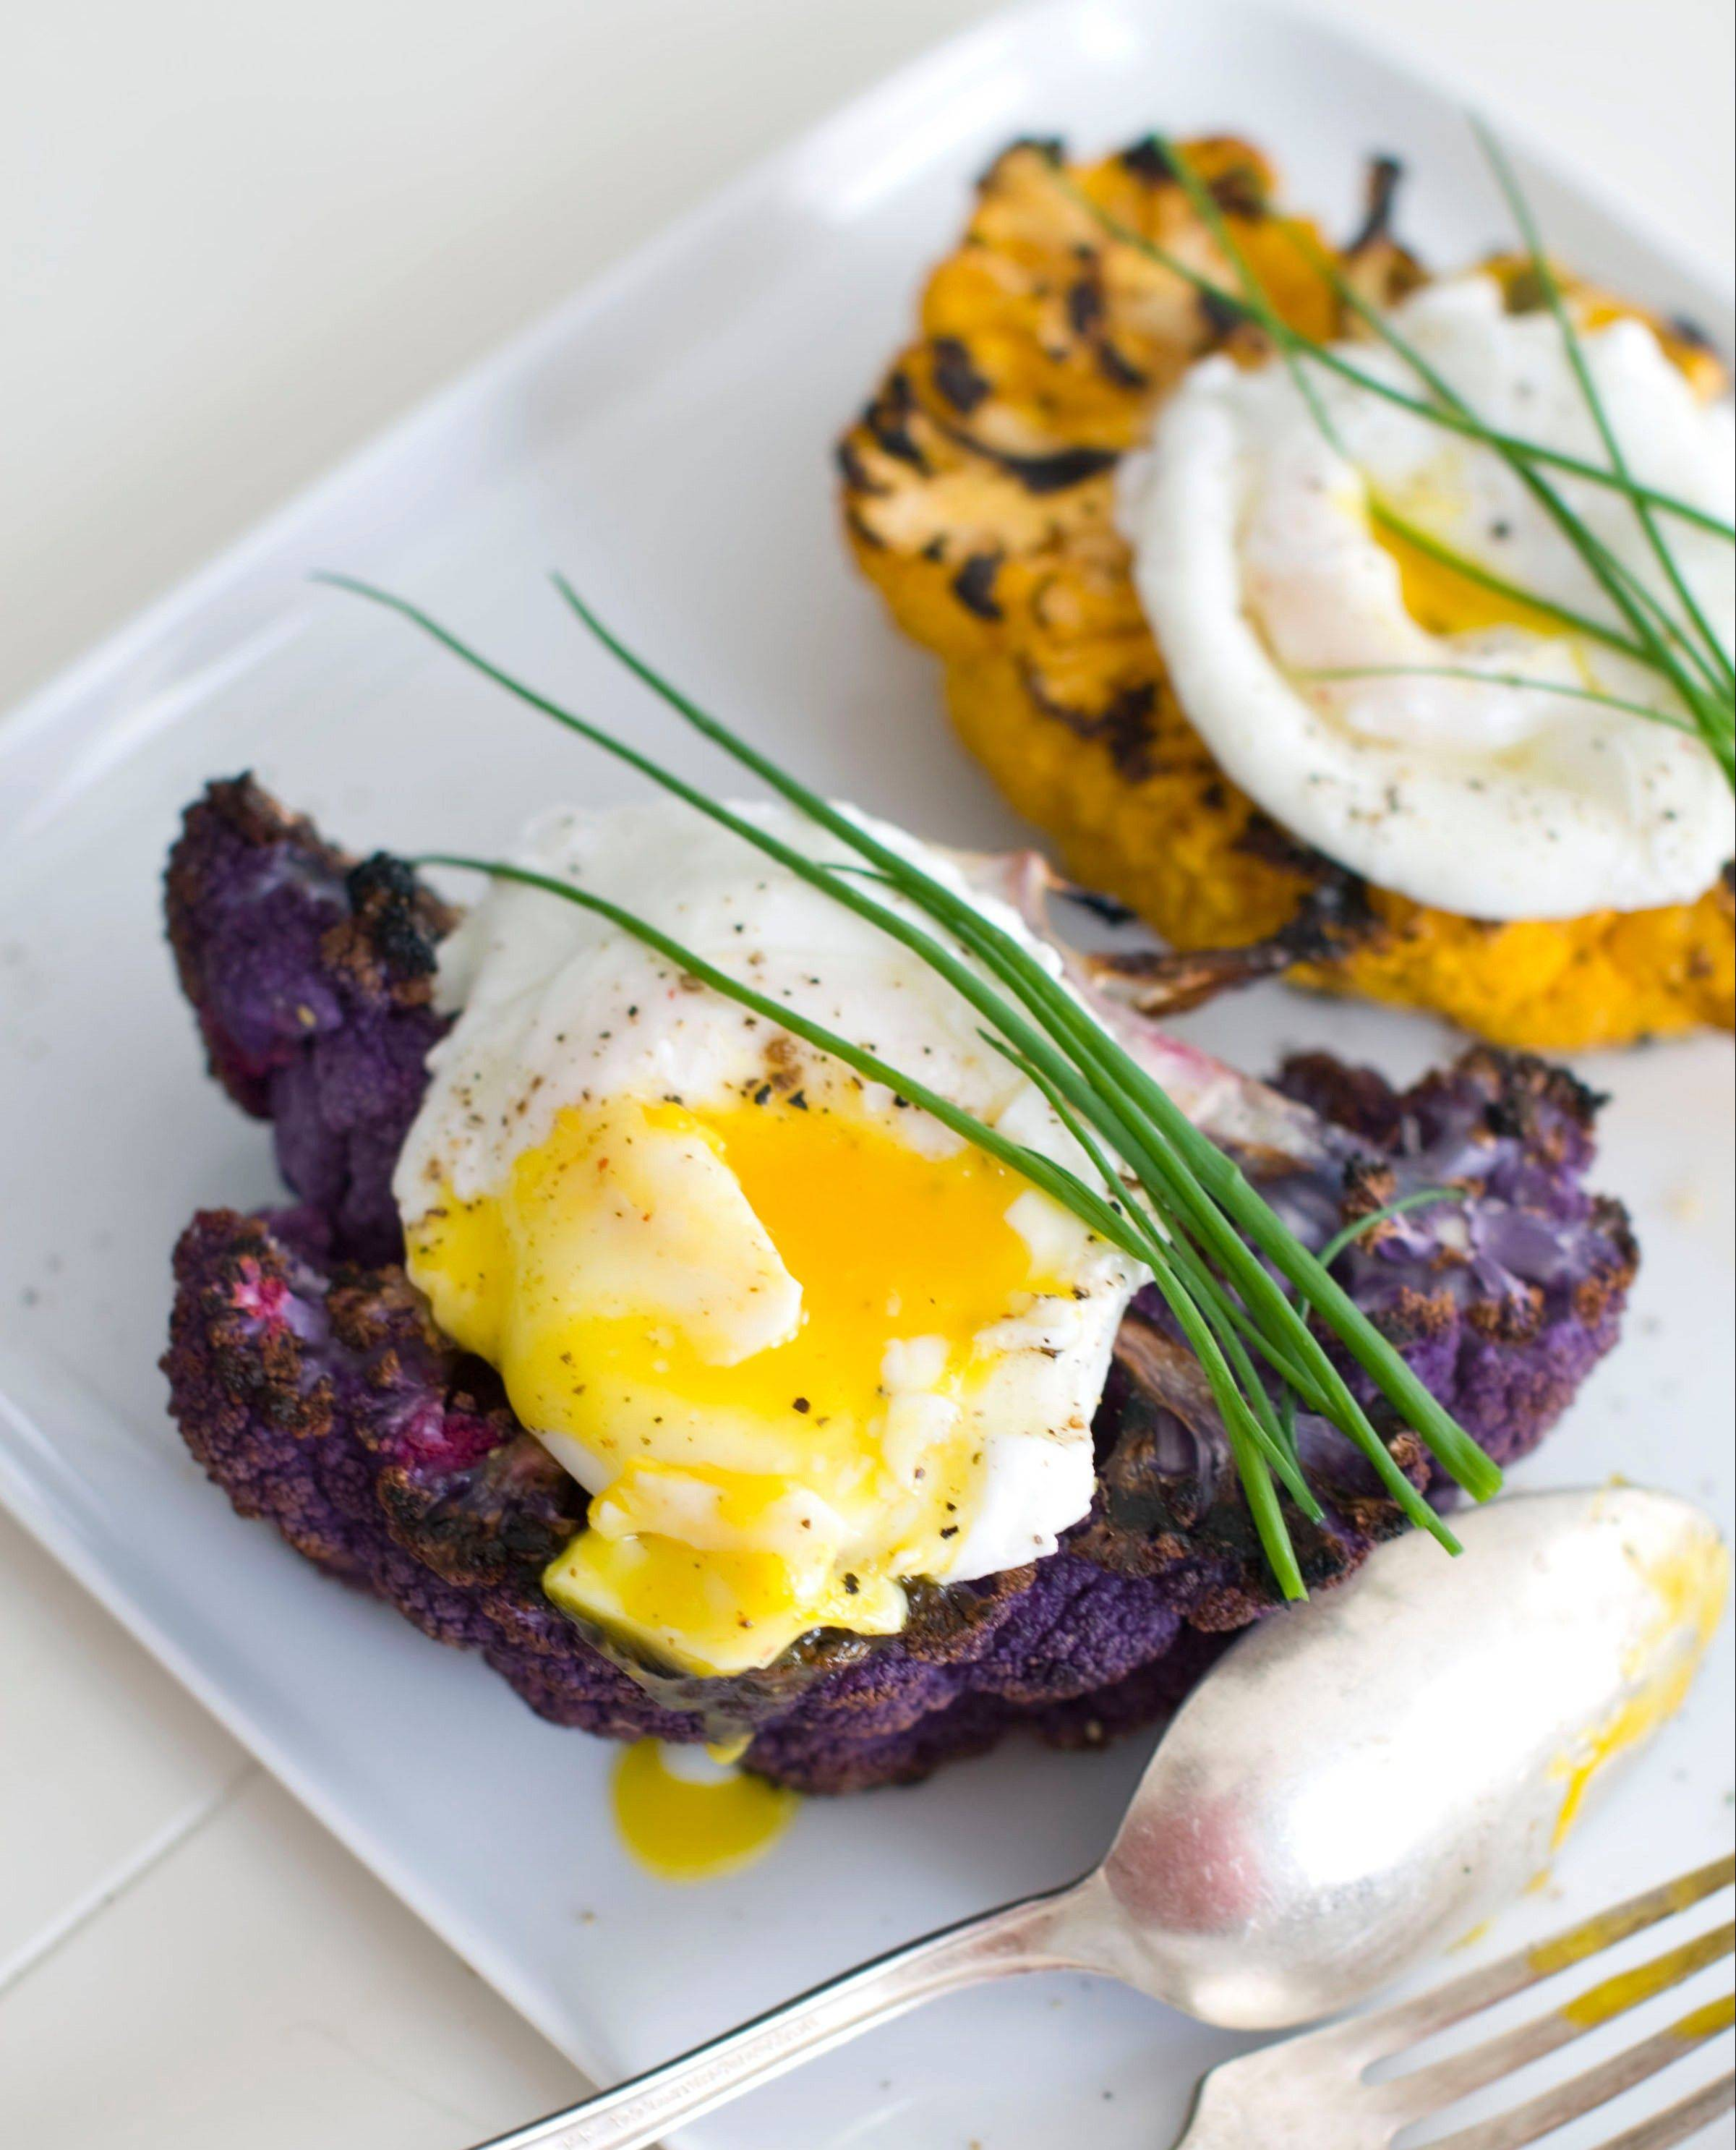 Grilled purple cauliflower stands in for steak in this brunch or dinner dish. The white version of this vegetable works just as well.